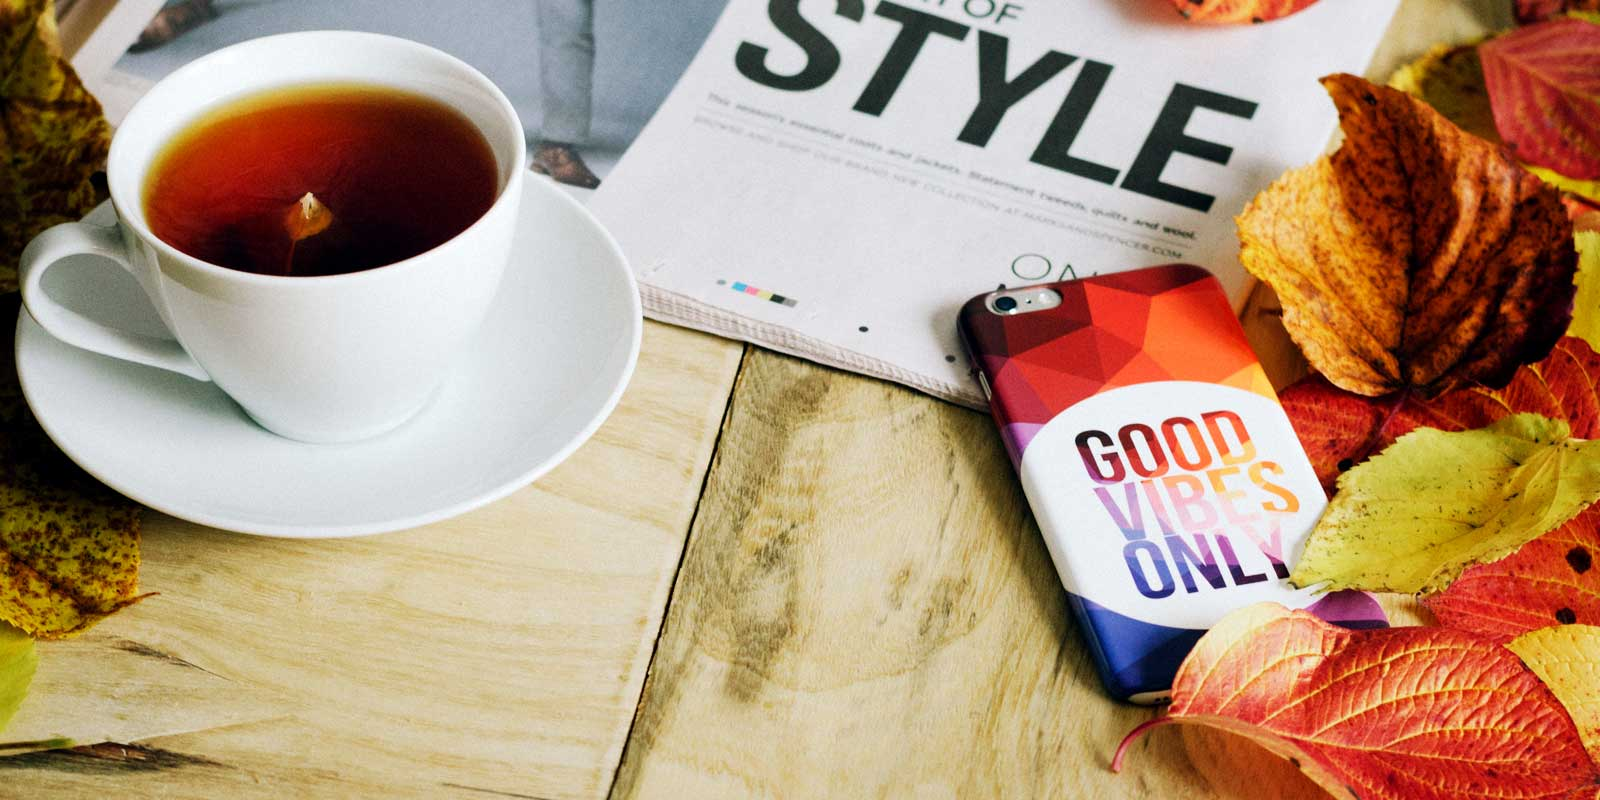 """Close up of a cup of tea, autumn leaves, a mobile phone case that says """"Good Vibes Only,"""" and the corner of a magazine."""